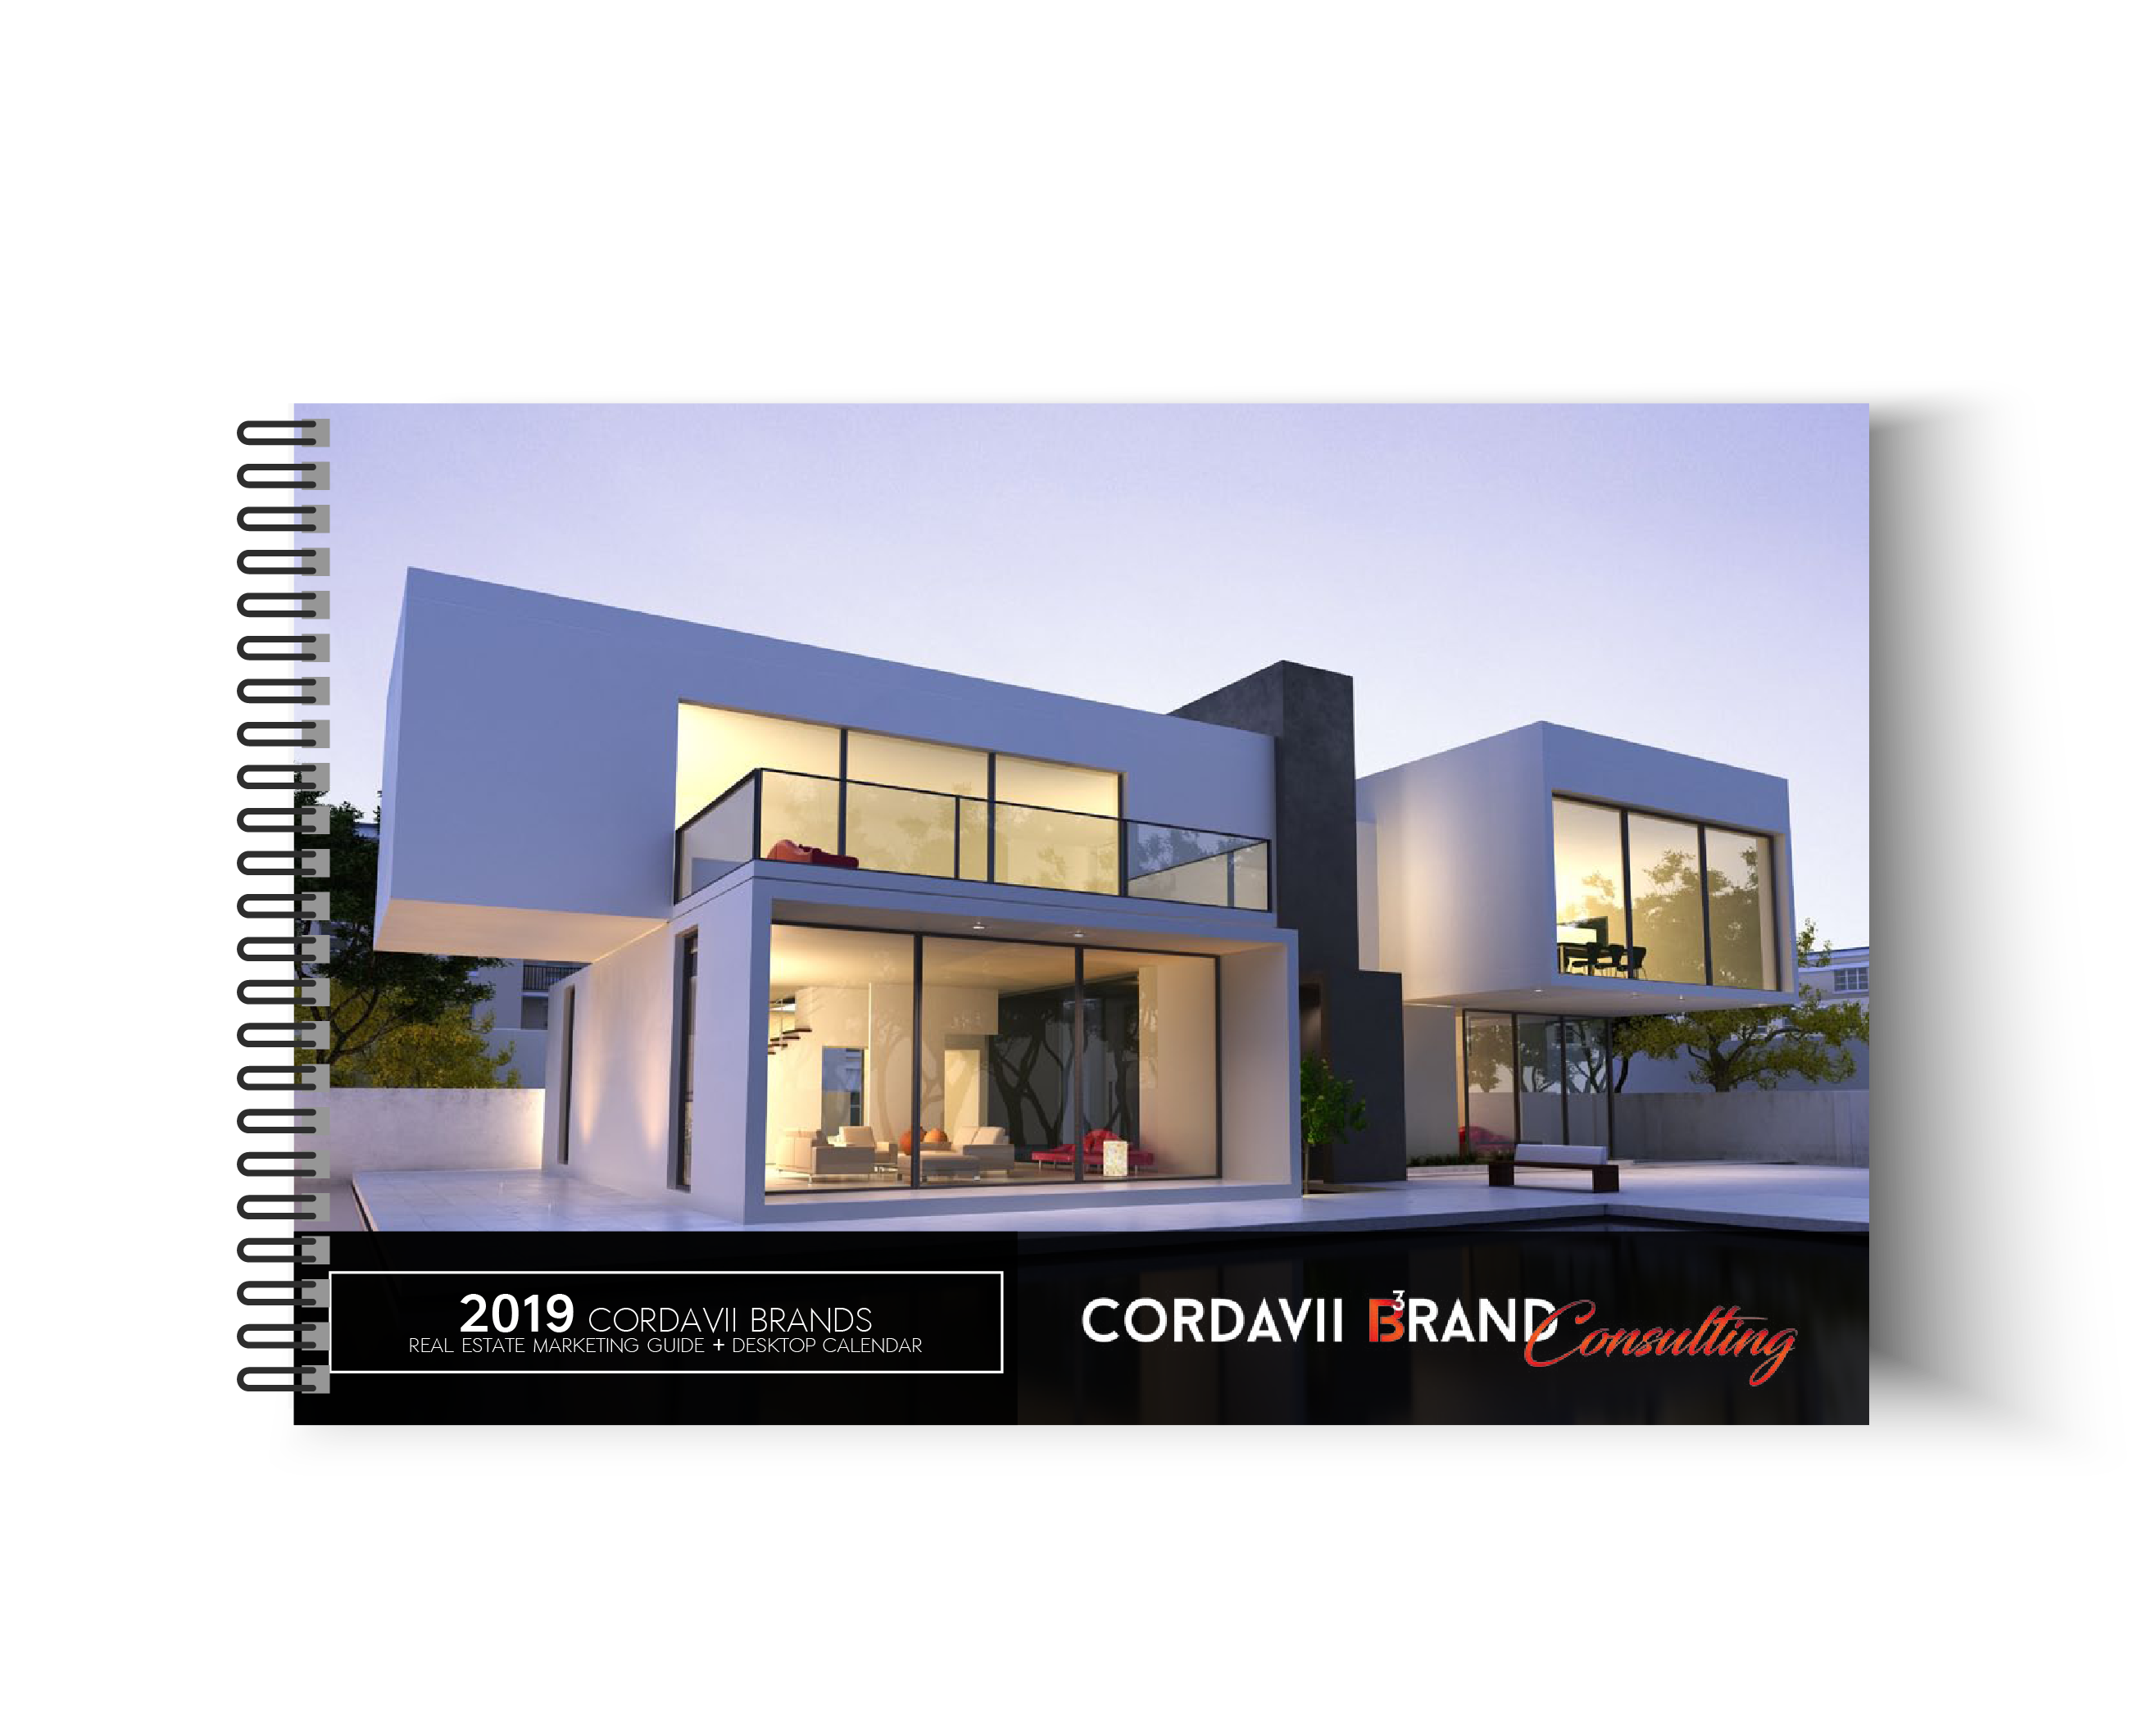 Cordavii 2019 Real Estate Marketing Calendar Front Cover